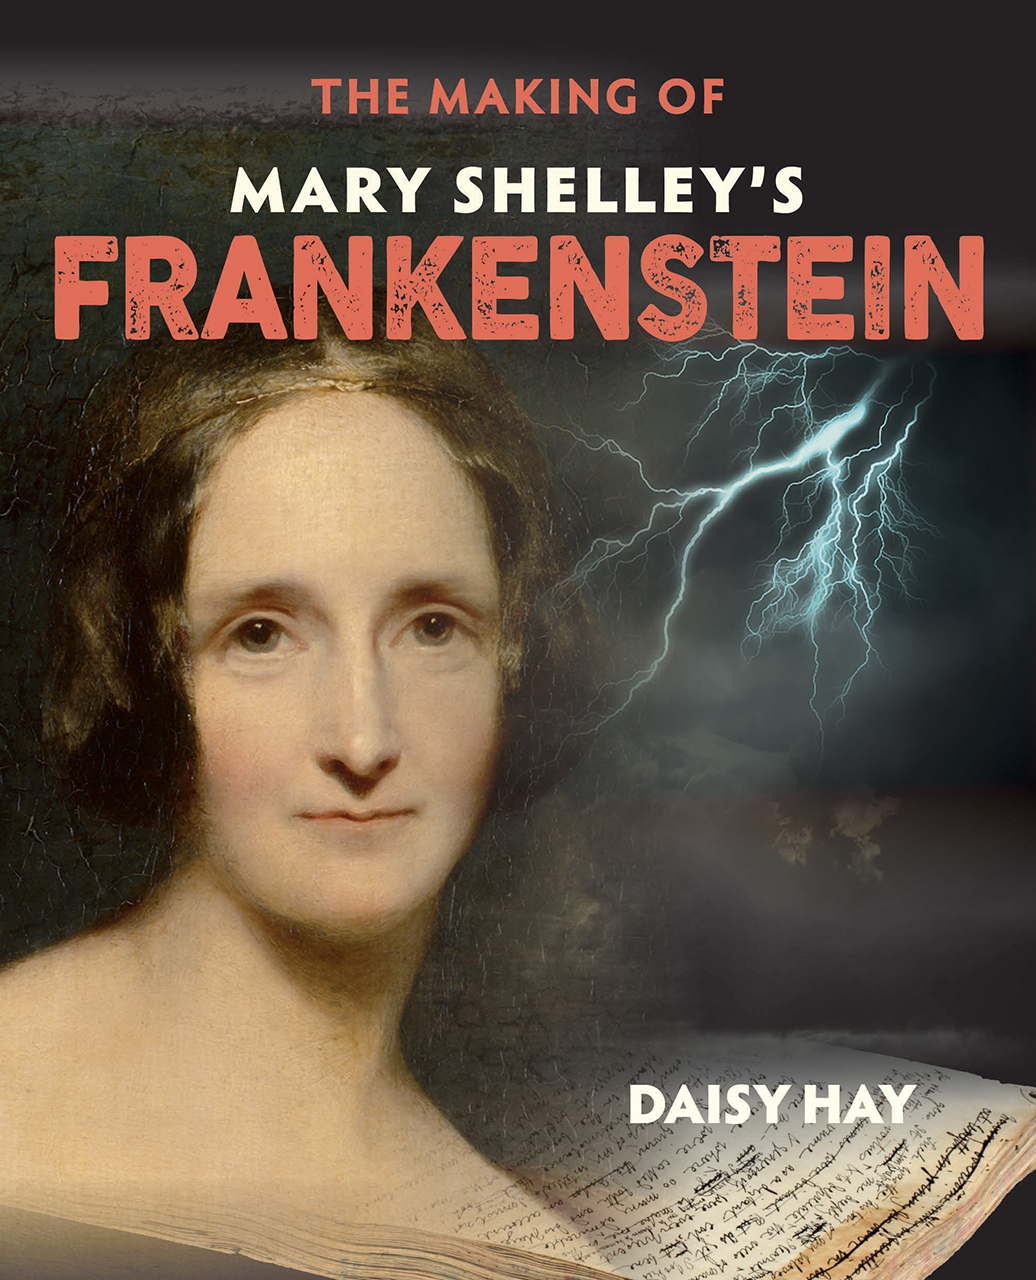 Making of Mary Shelley's Frankenstein